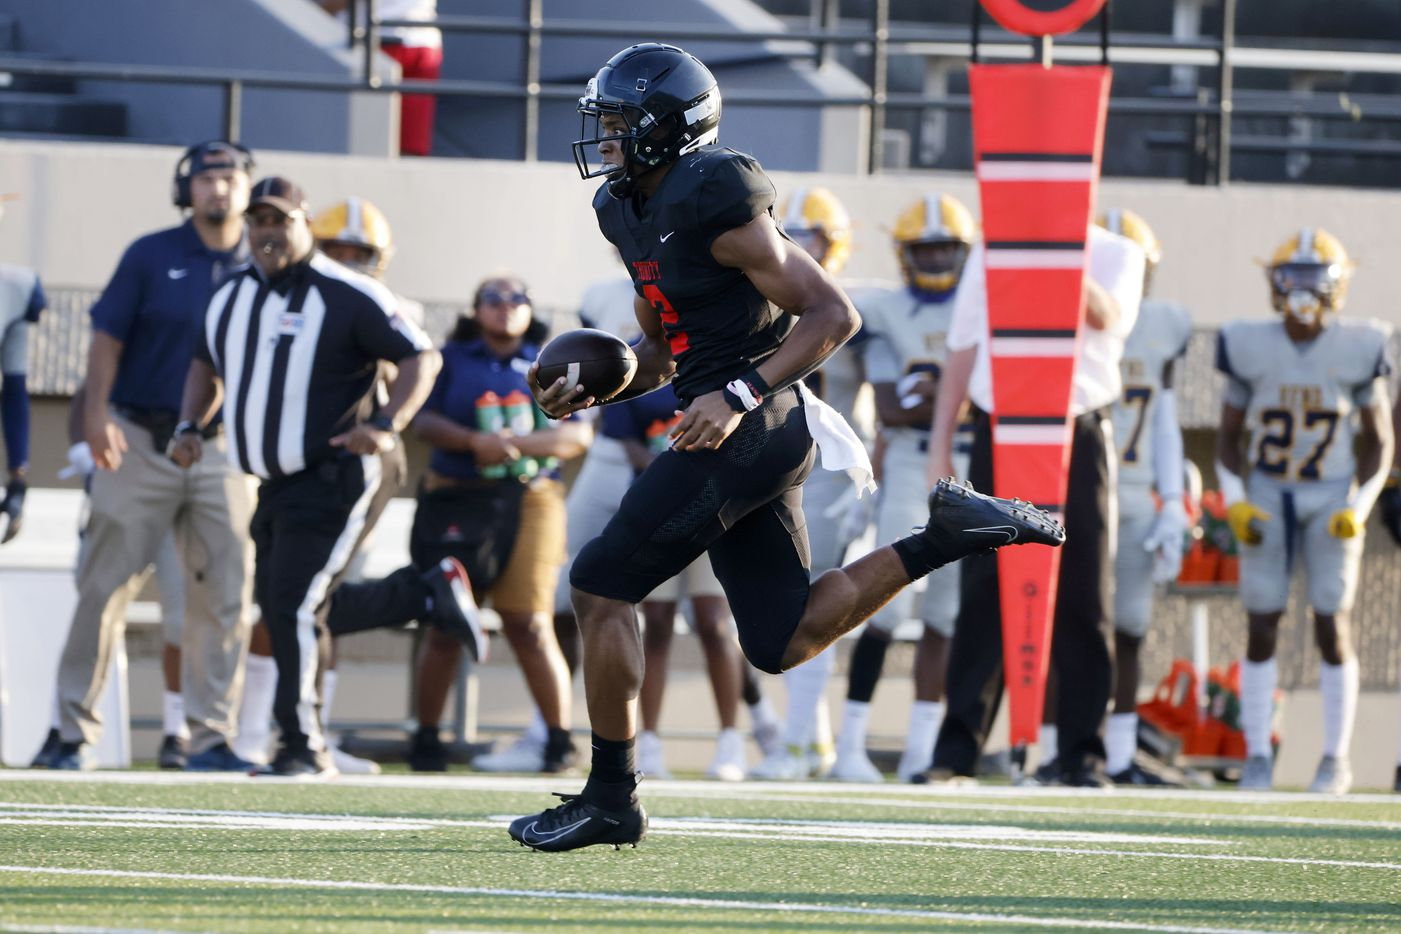 Euless Trinity quarterback Ollie Gordon runs for the first touchdown against Arlington Lamar during the first half of their high school football game in Bedford, Texas on Aug. 26, 2021. (Michael Ainsworth/Special Contributor)